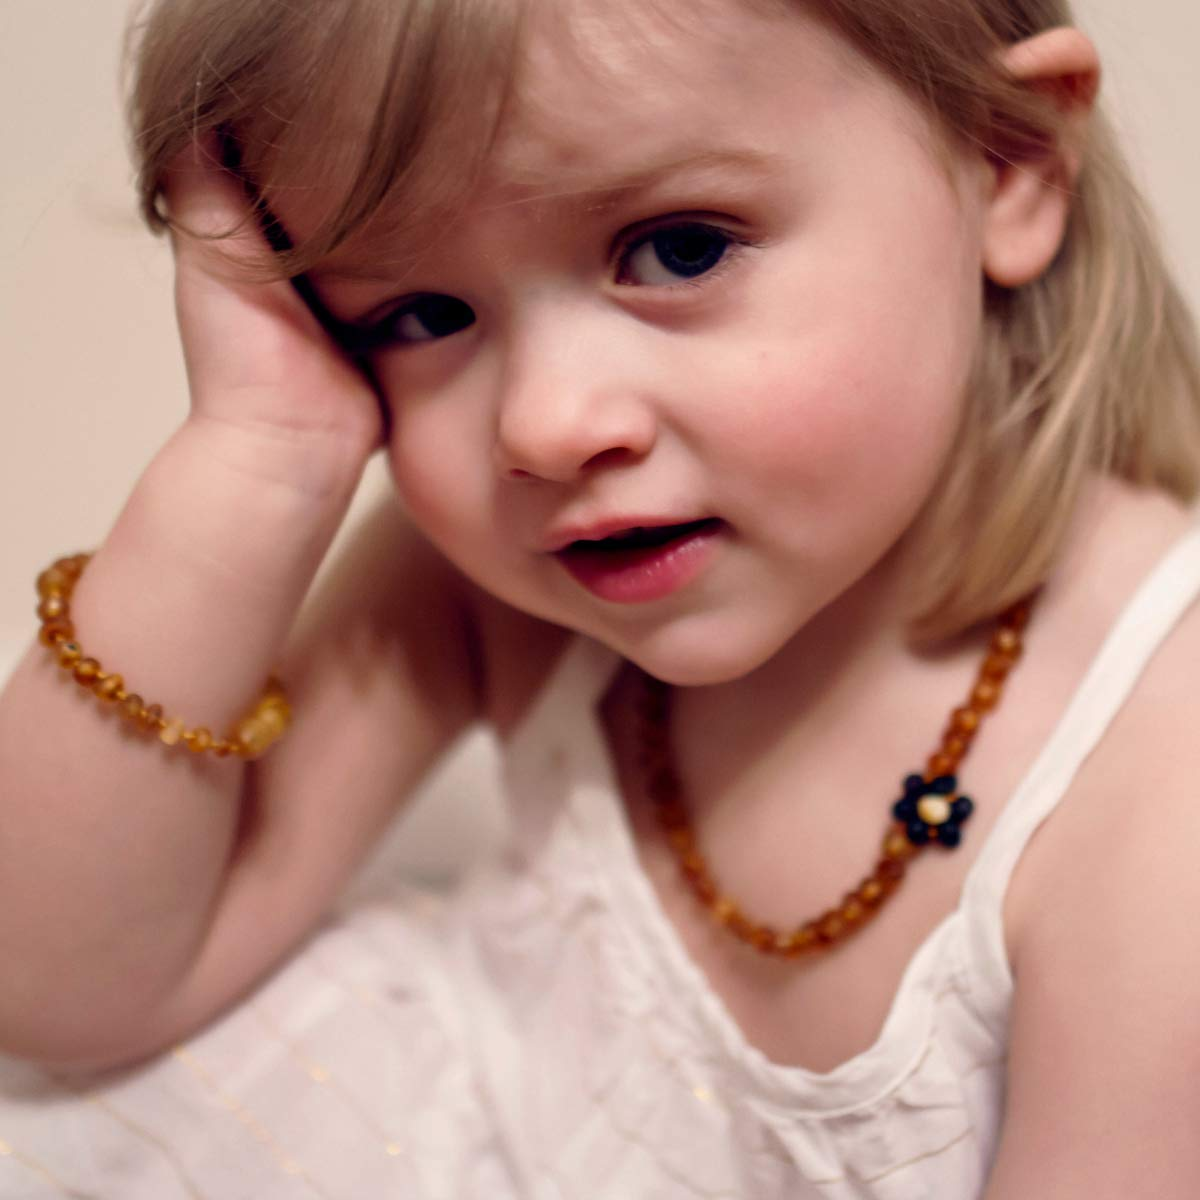 12-13 inches, Lemon Hand Crafted Baltic Amber Teething Necklace in 3 Sizes Teething Relief for Baby and Child Premium Grade Amber Teething Necklace POP CLASP